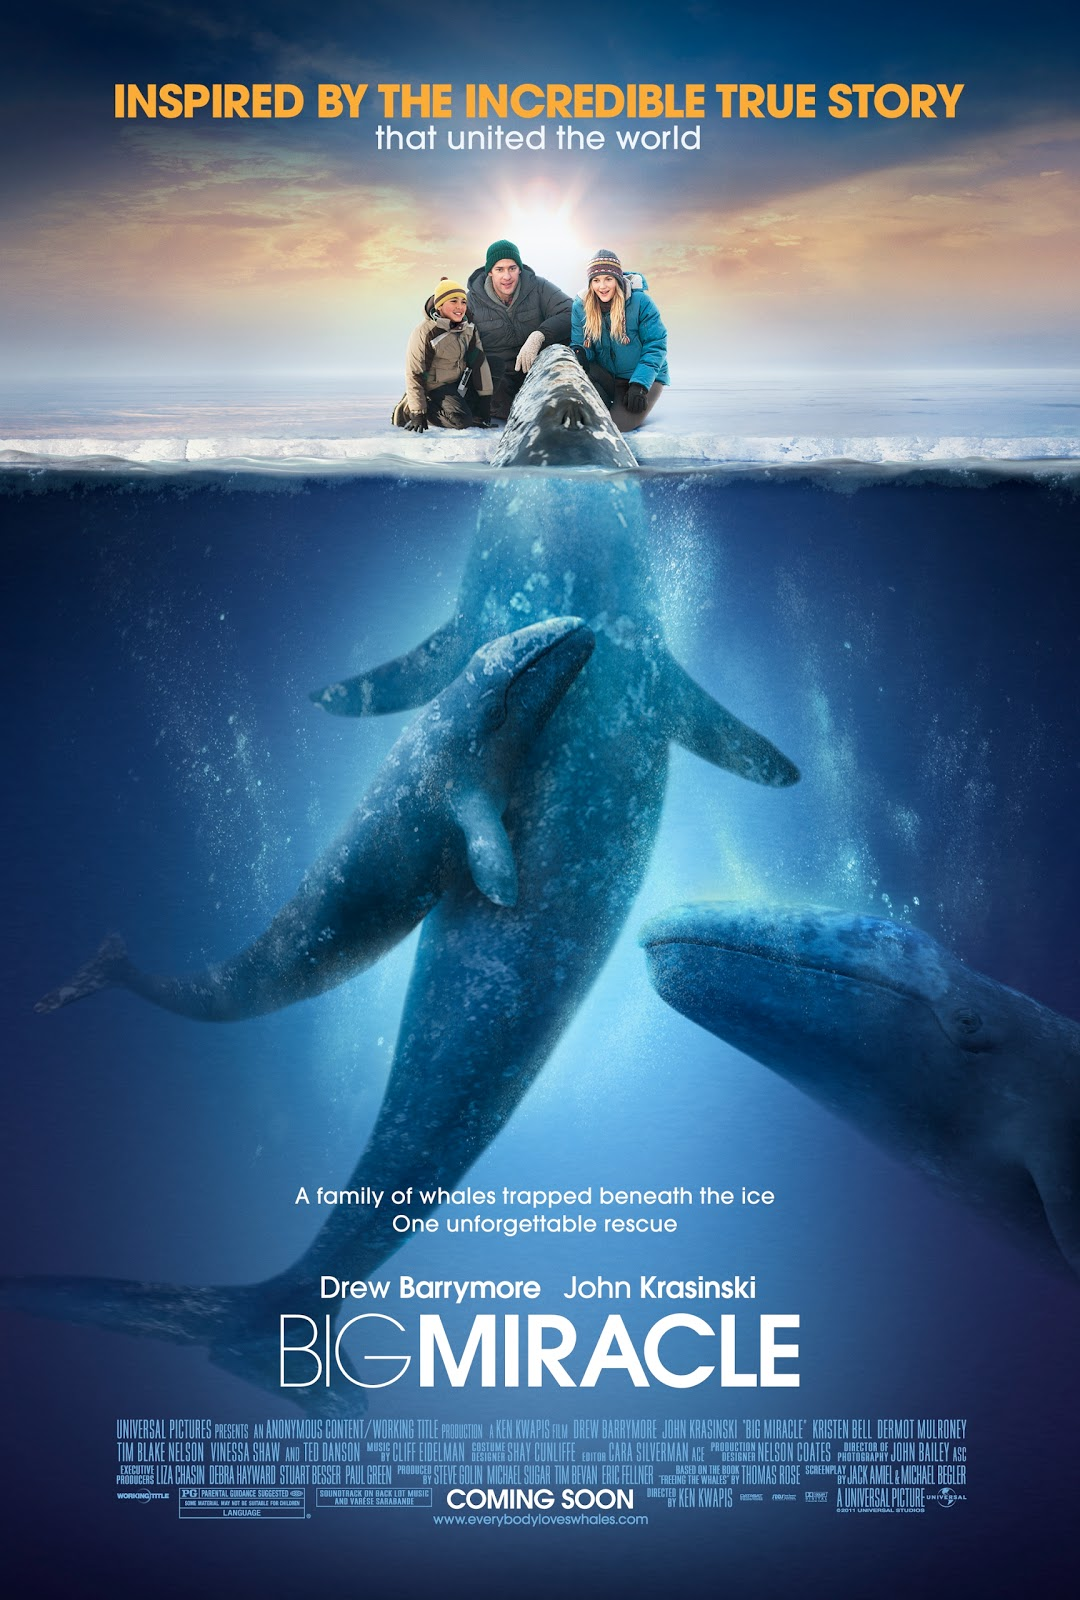 True Story Magazine Subscription: Cinemas Tube: Big Miracle- Inspired By A True Story